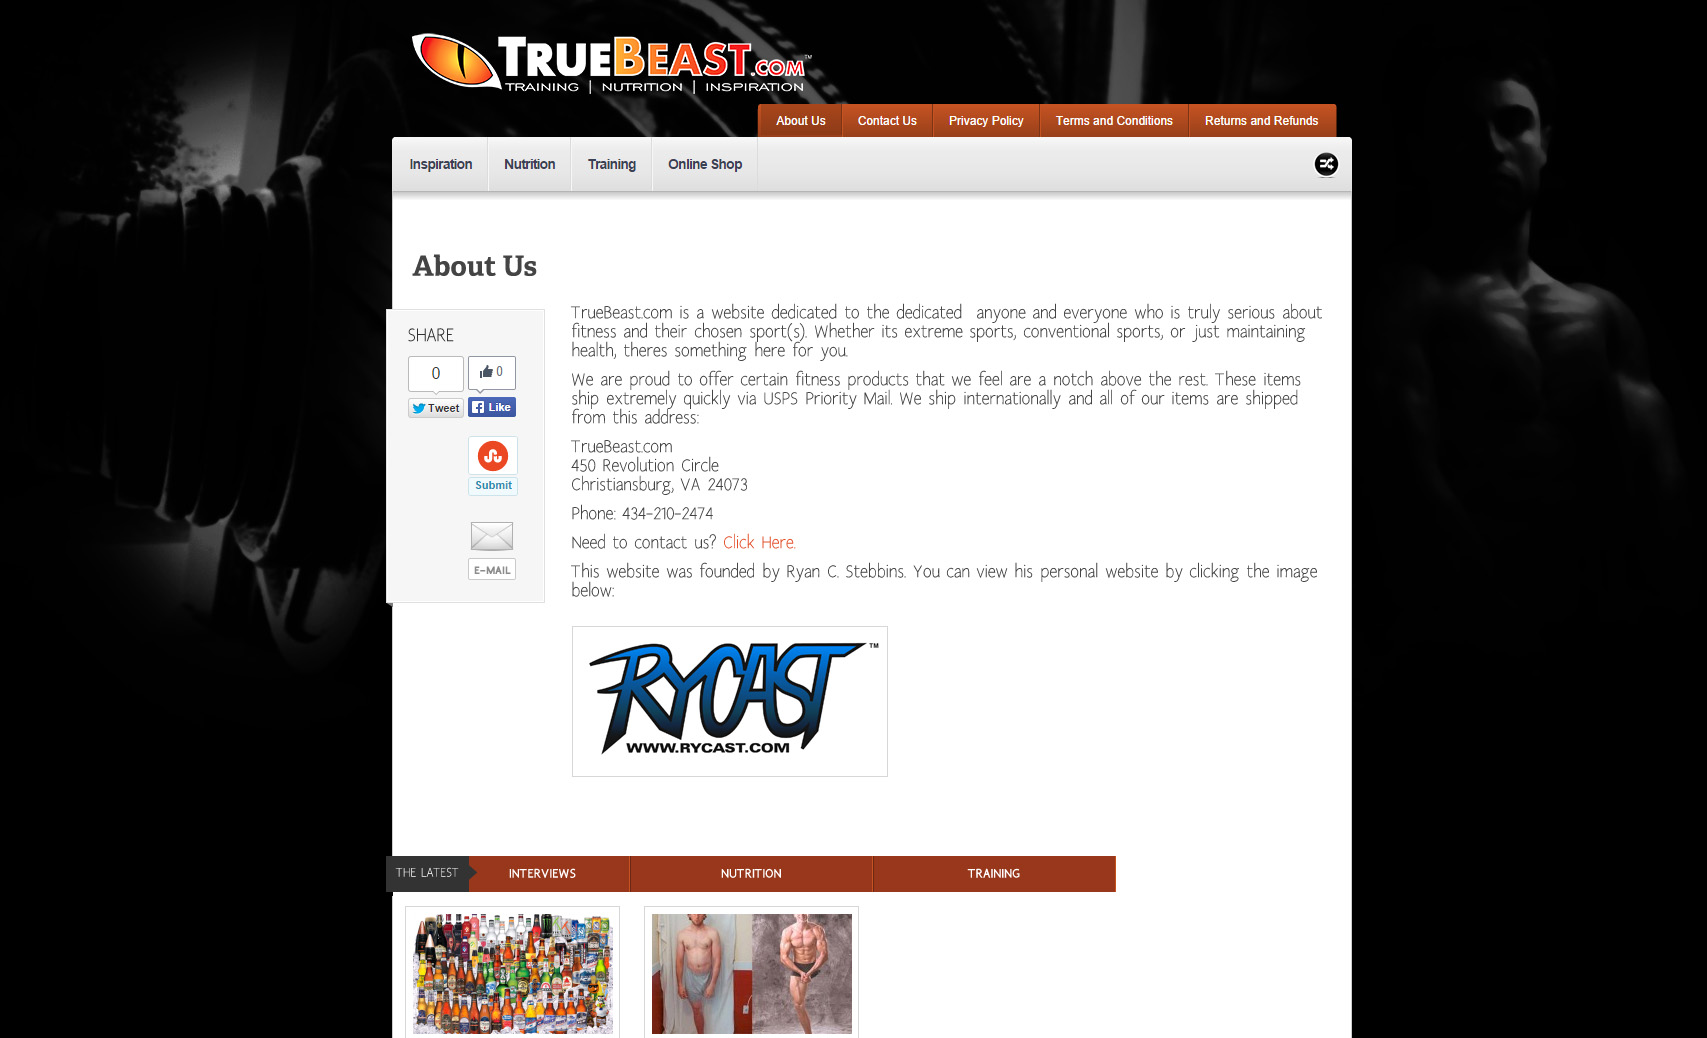 TrueBeast.com - About Us Page